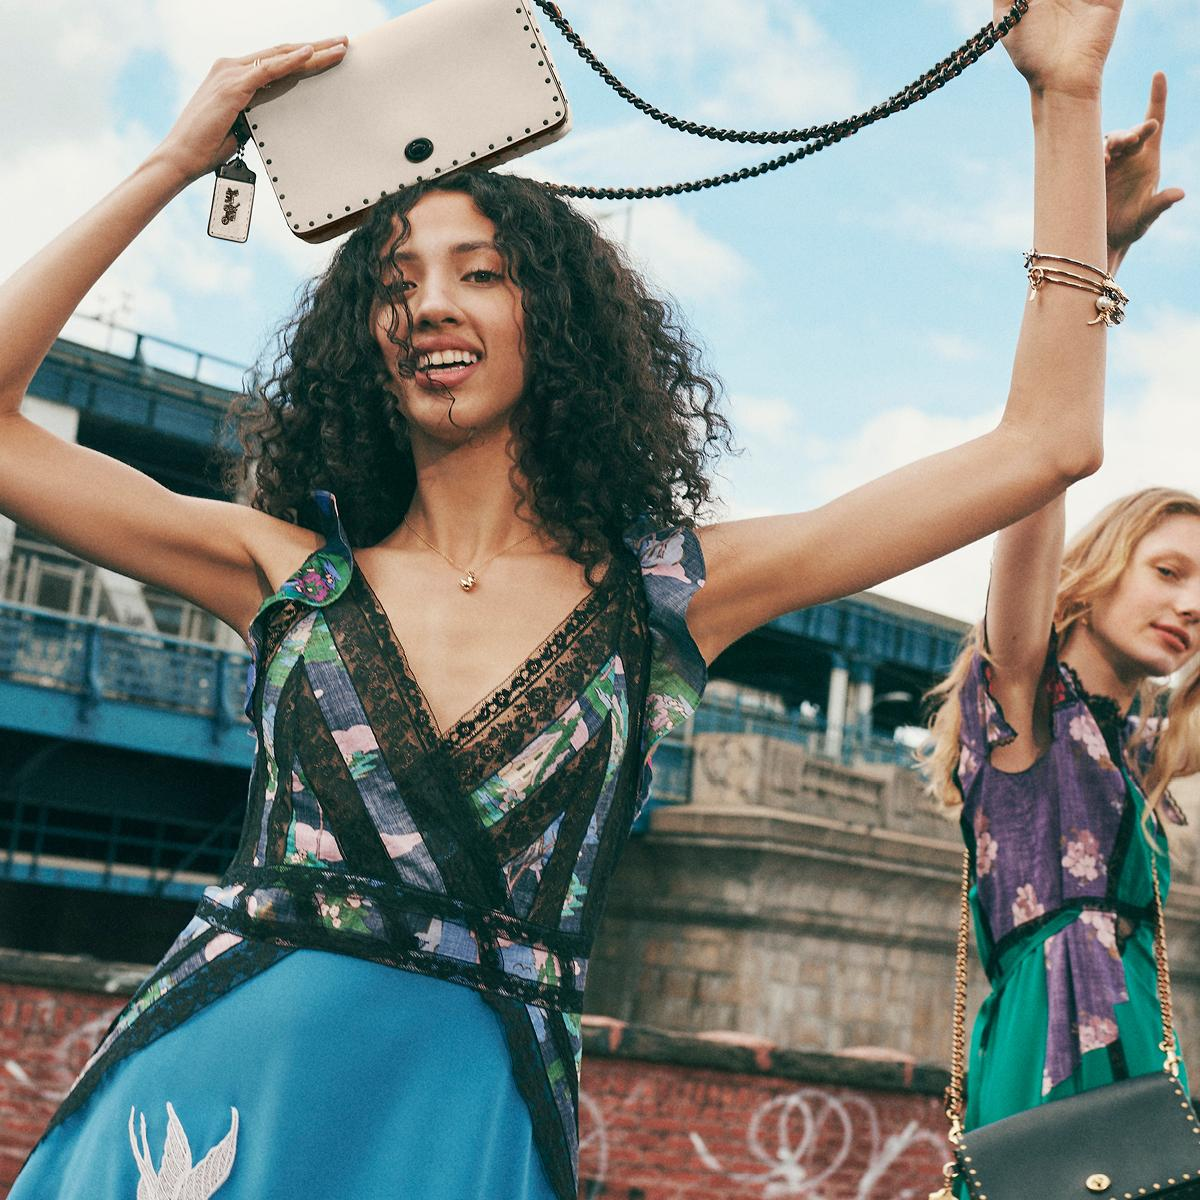 Vibes on the eve of a Summer Friday. #CoachSS18 #CoachNY https://t.co/mvtTvZ6s1V